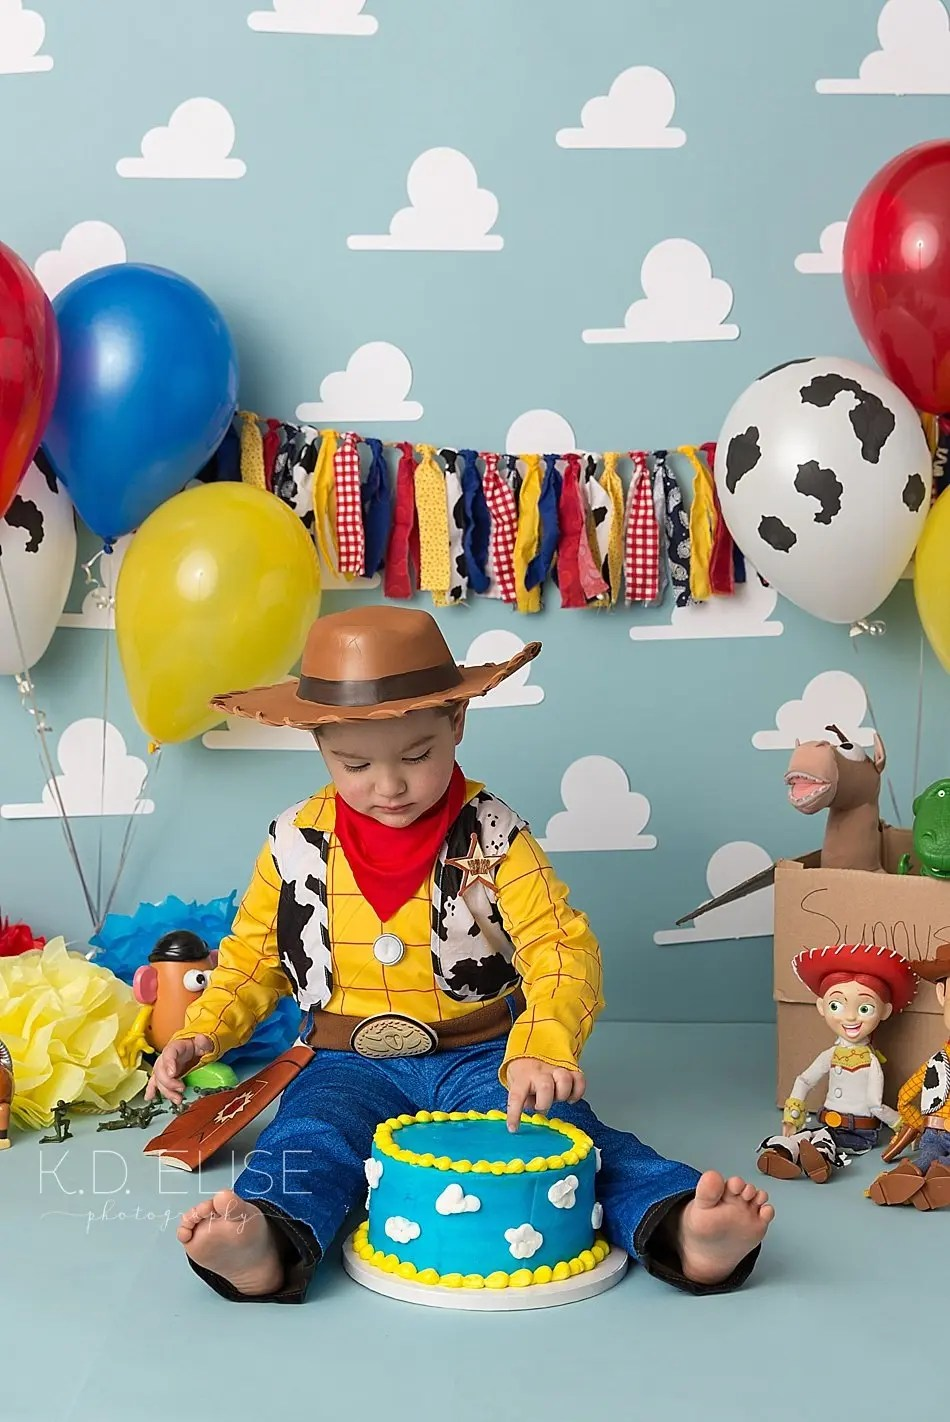 Toy Story themed cake smash photo of little boy in Woody costume.